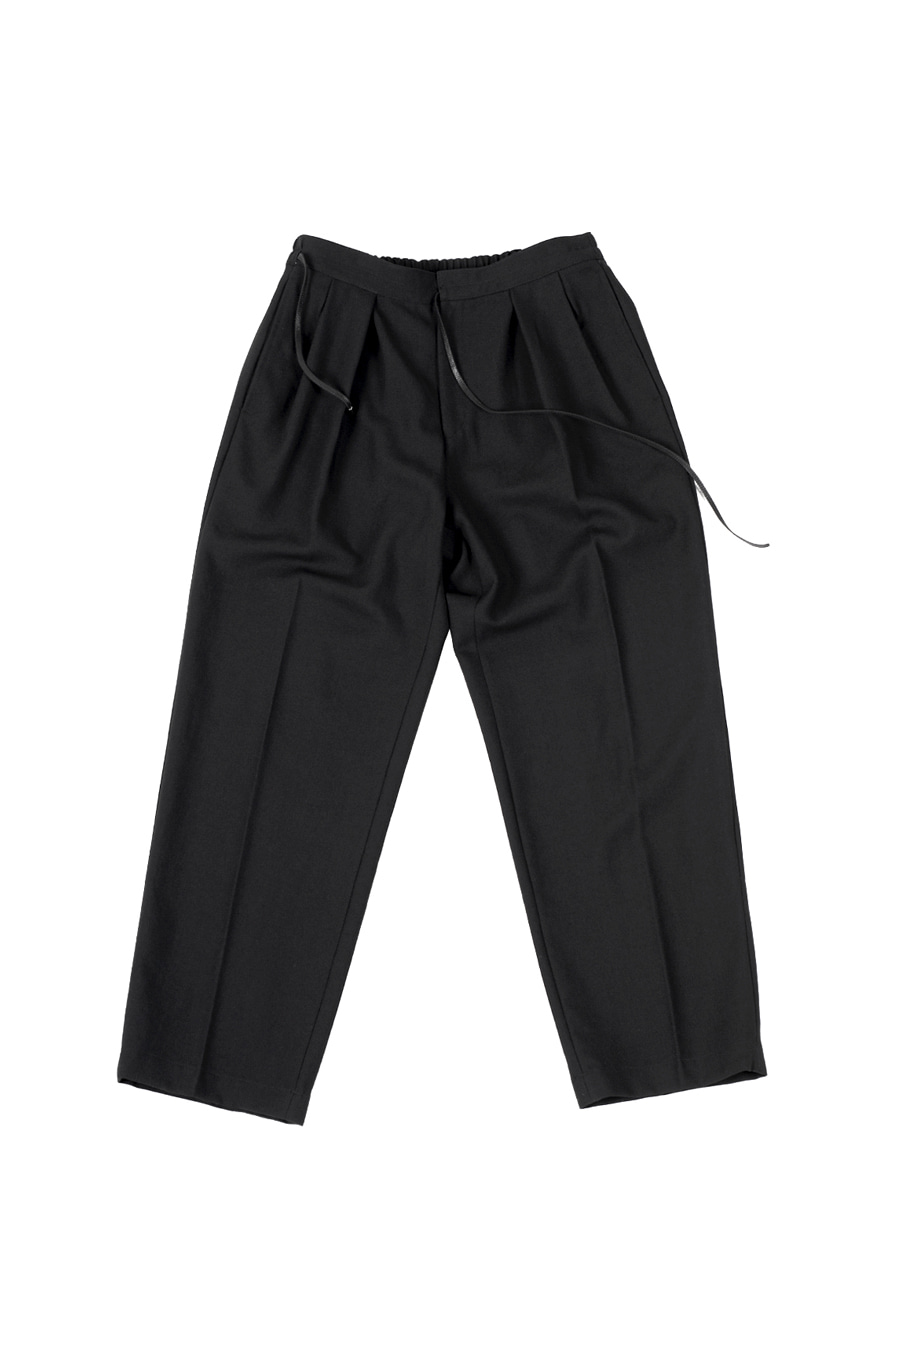 아티튜드(ARTTITUDE)Summer Wool Hakama Pants / Black